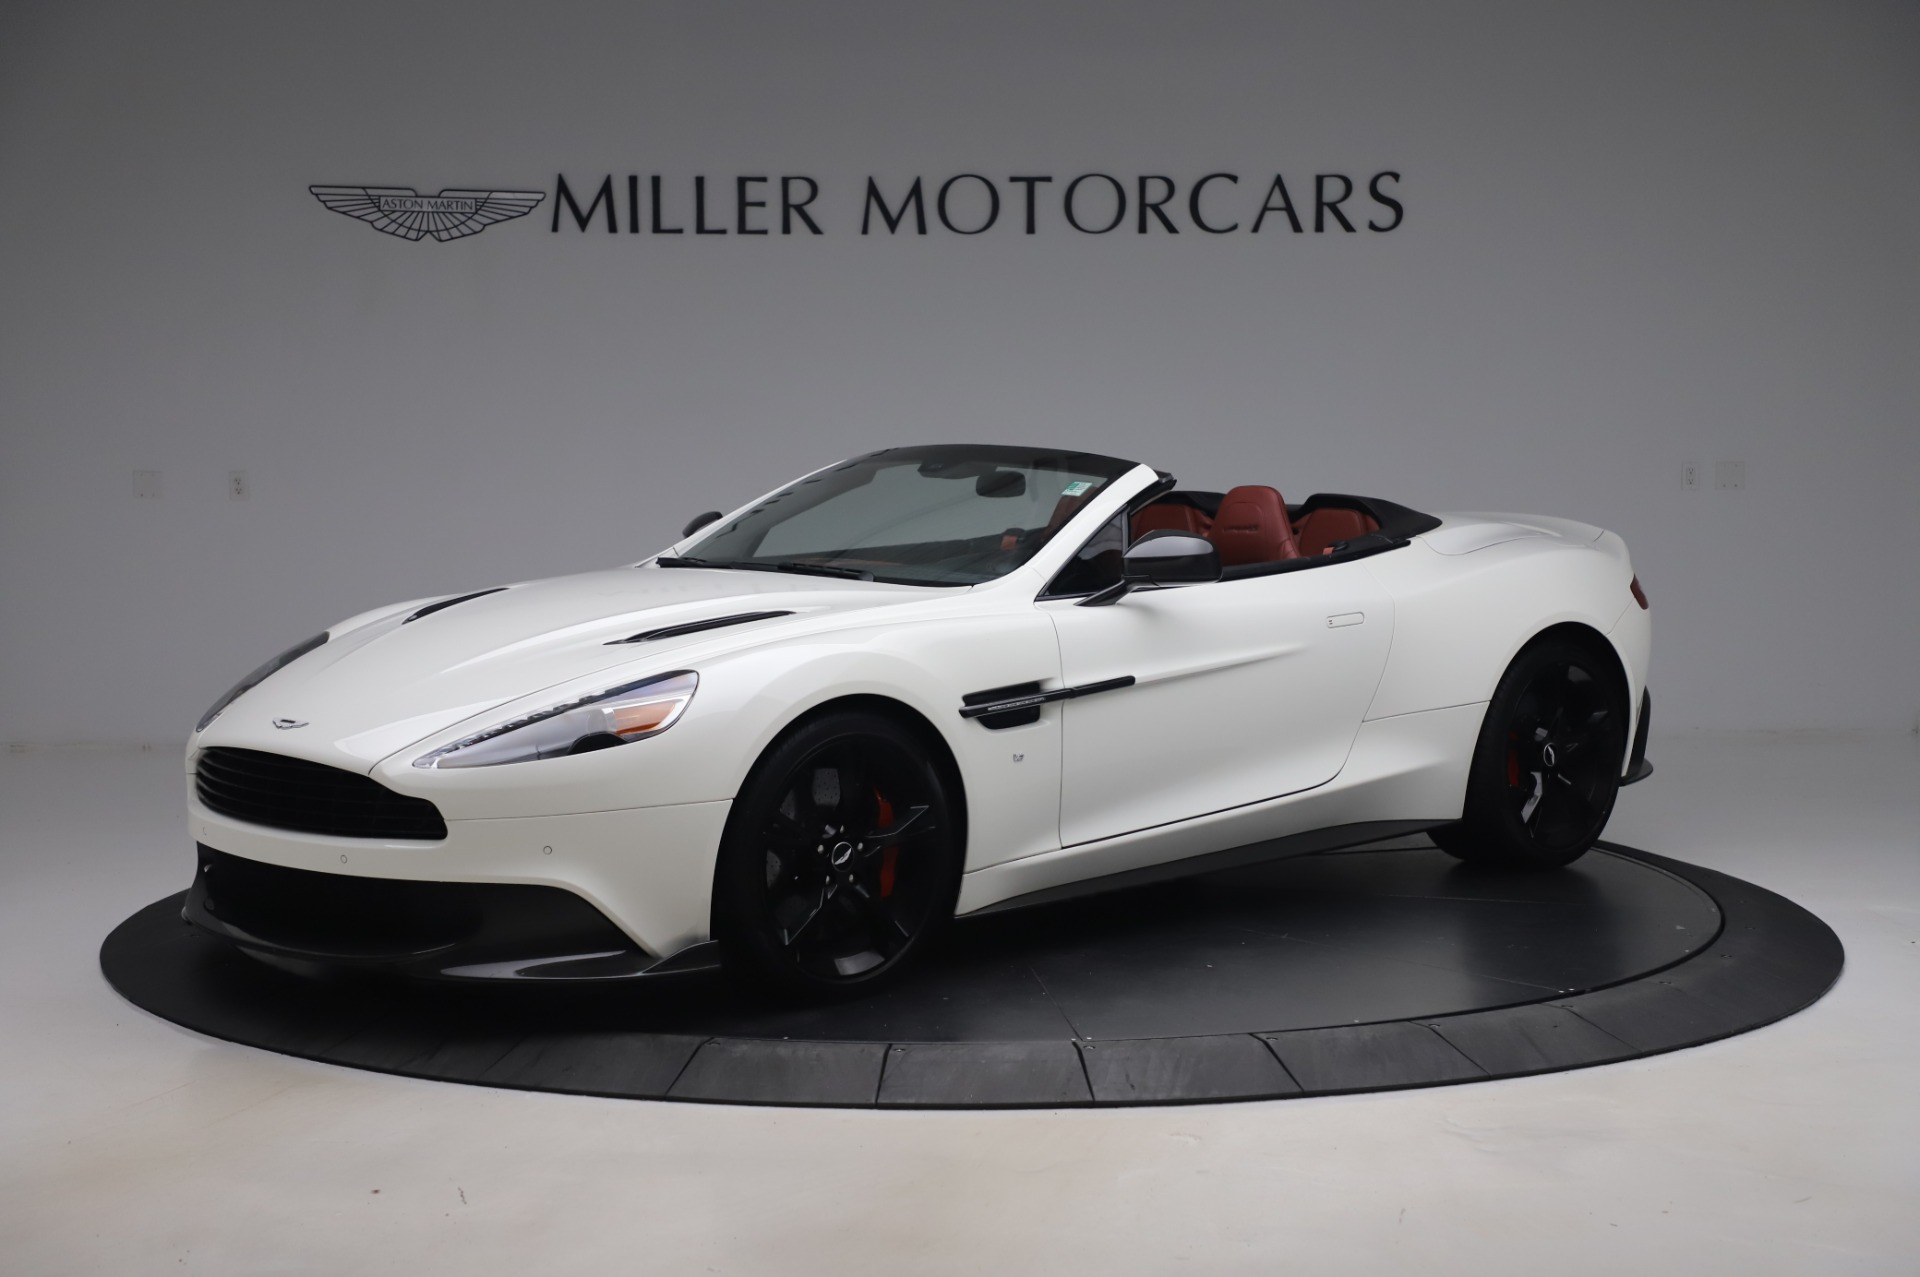 Pre Owned 2018 Aston Martin Vanquish Volante For Sale Special Pricing Aston Martin Of Greenwich Stock 7858